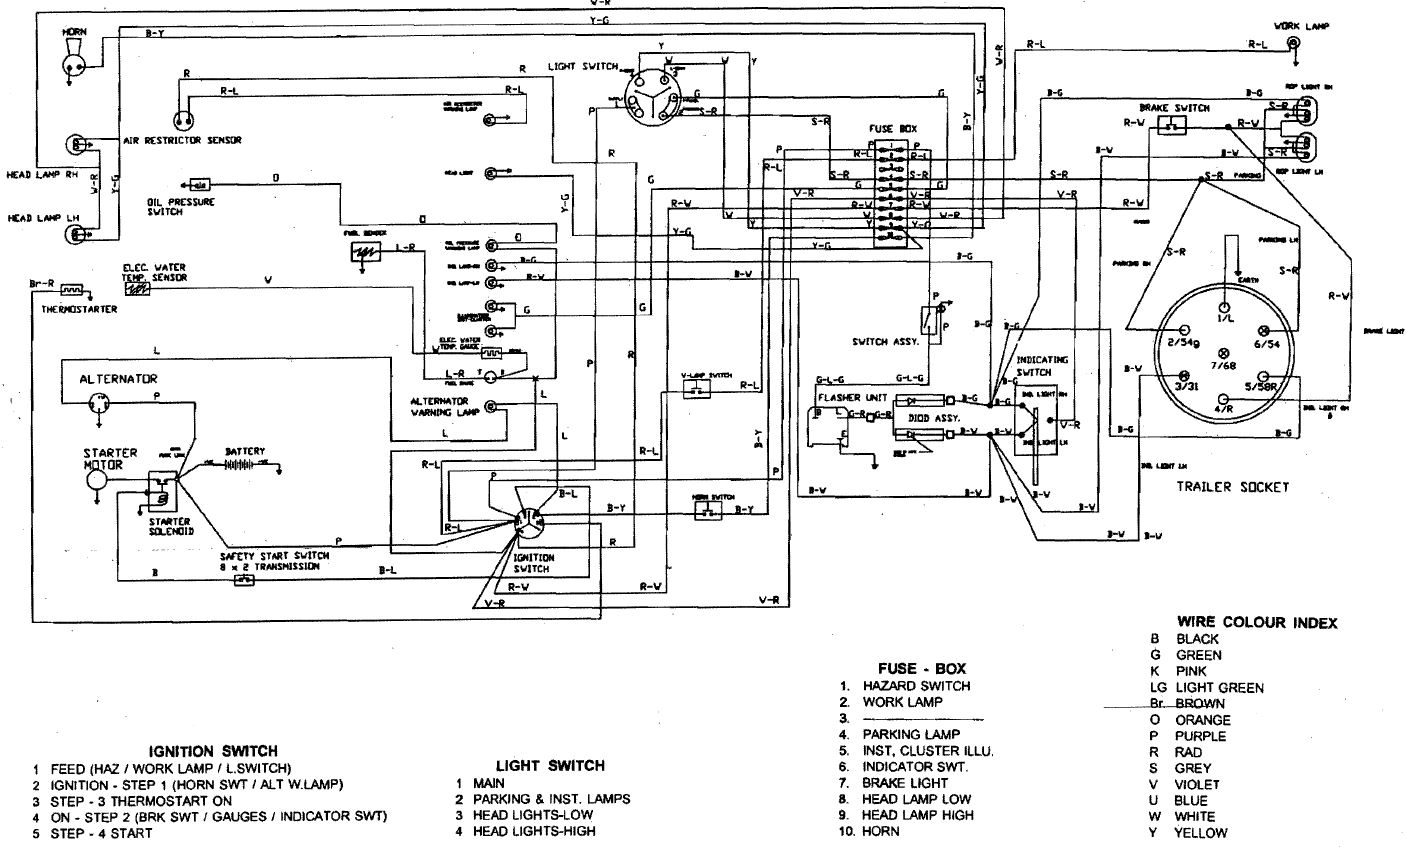 Ignition switch wiring diagram – John Deere 4640 Cab Wiring Diagram